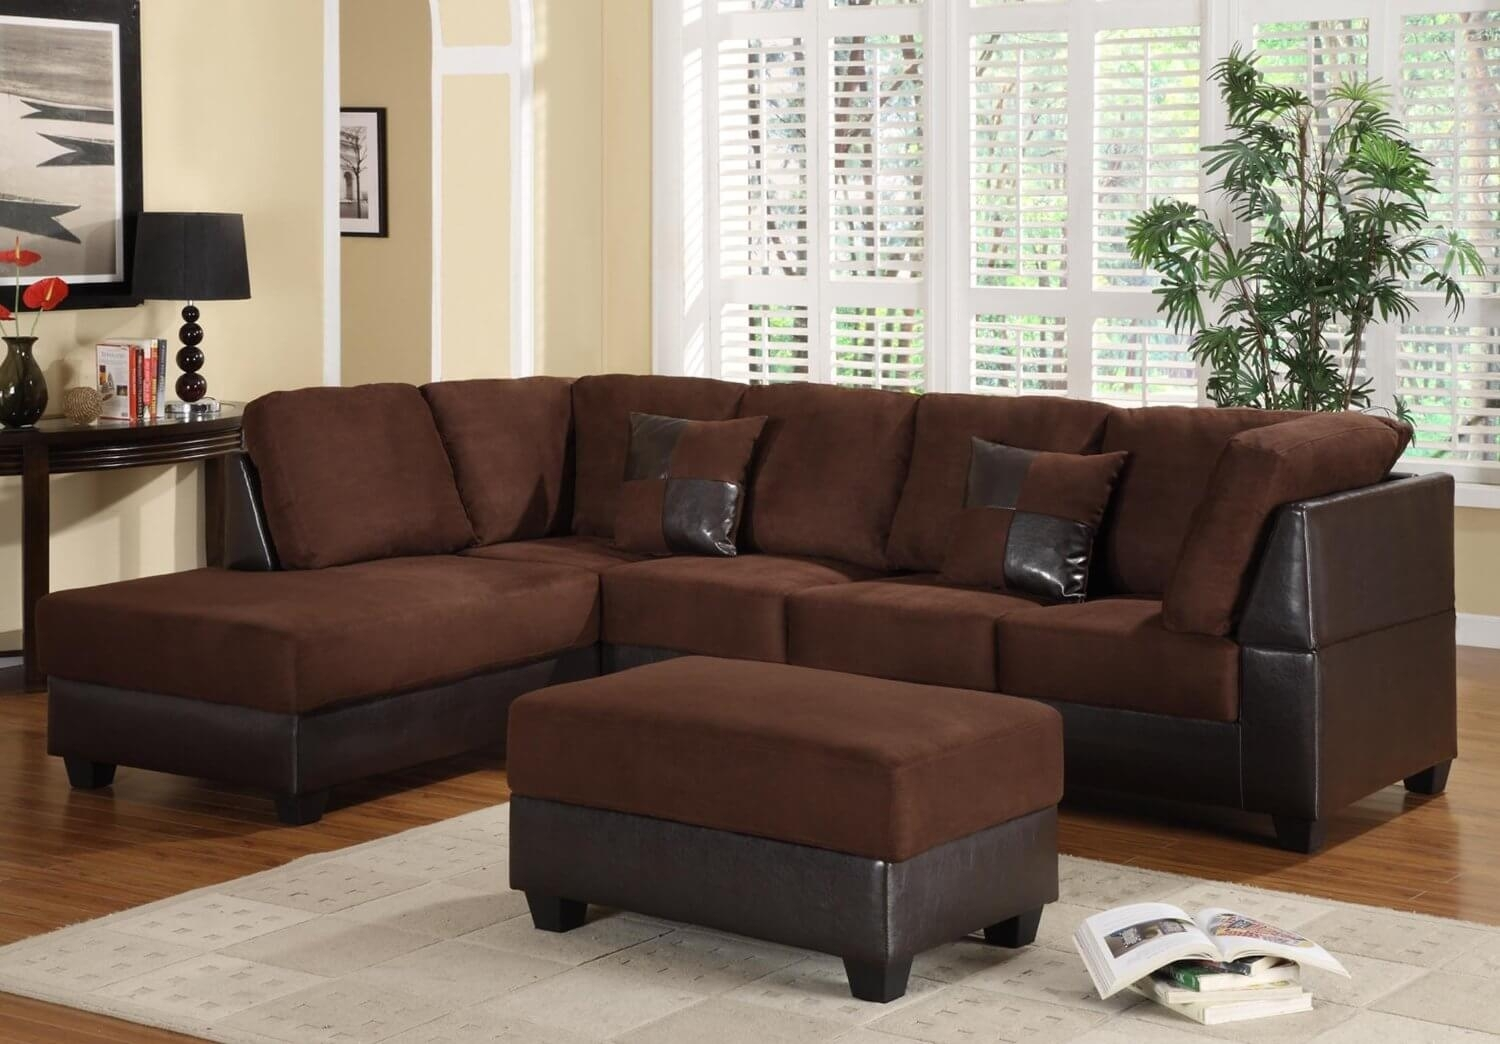 Cheap Sofas And Loveseats Furniture Under 200 For Living Room Throughout Sectional Sofas Under (View 5 of 10)